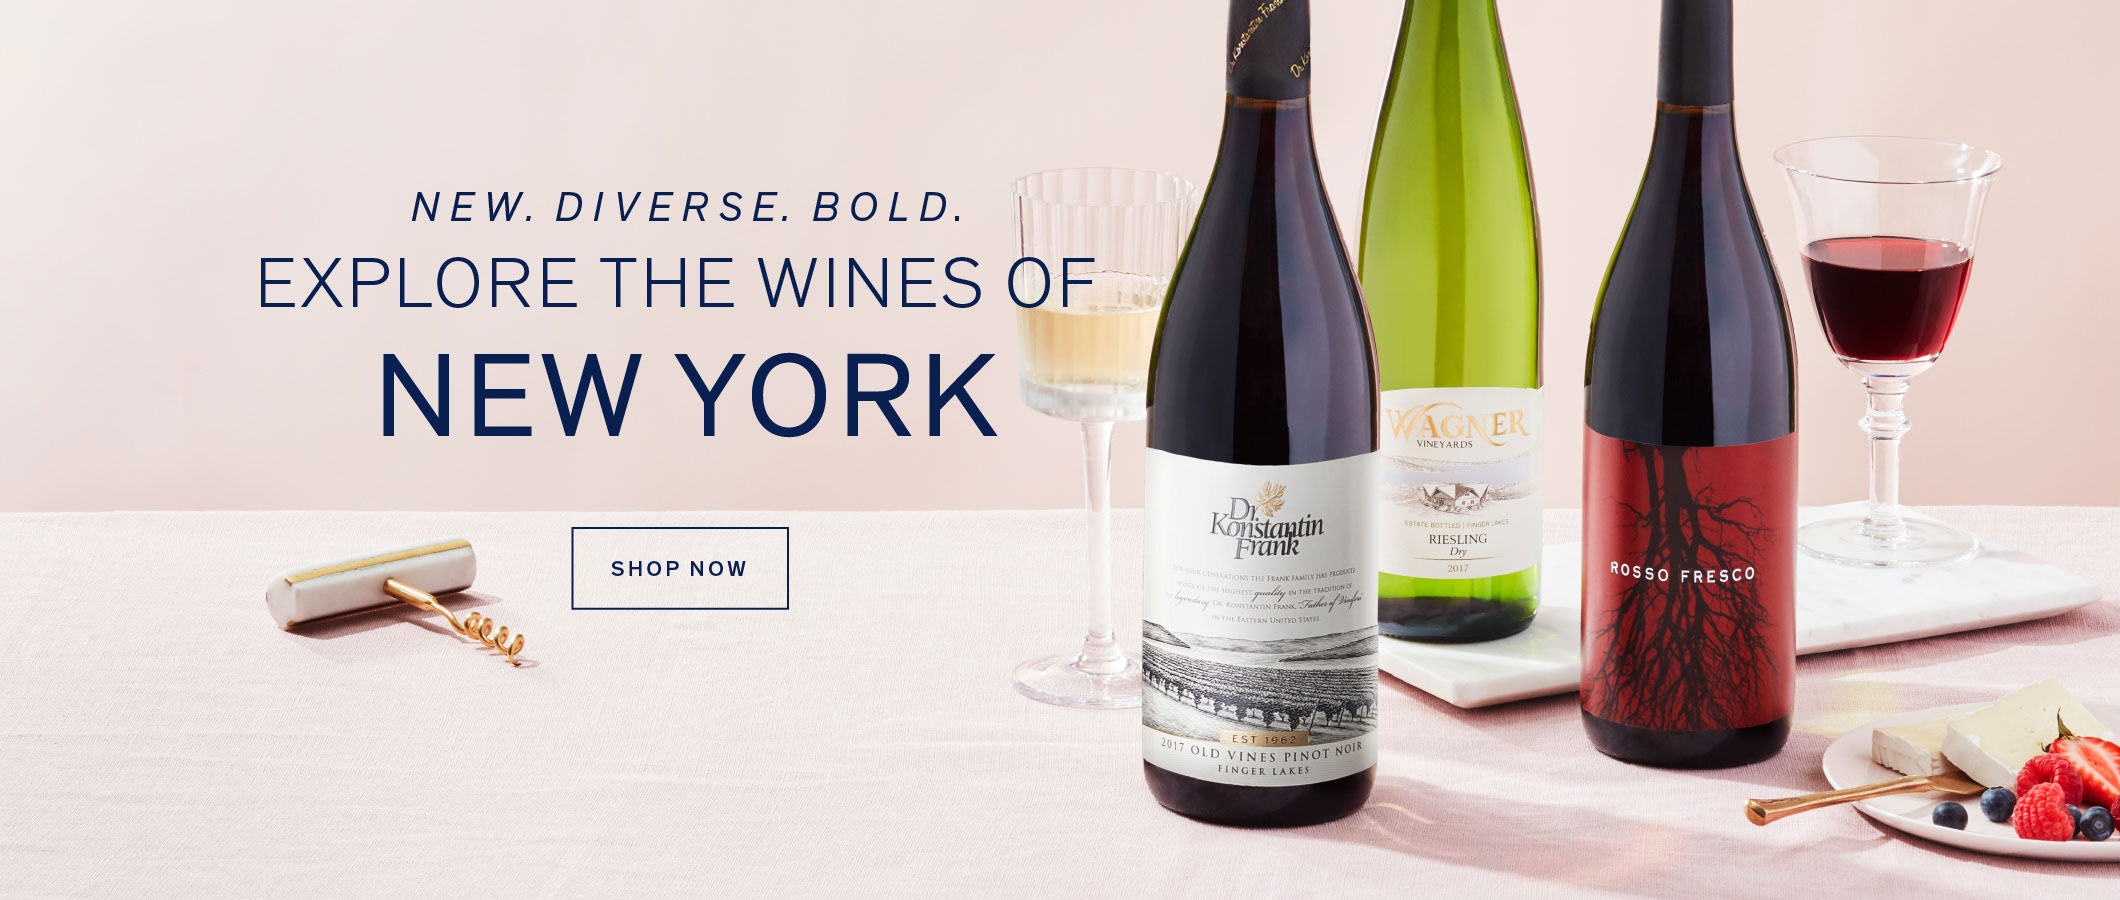 Explore the Wines of New York